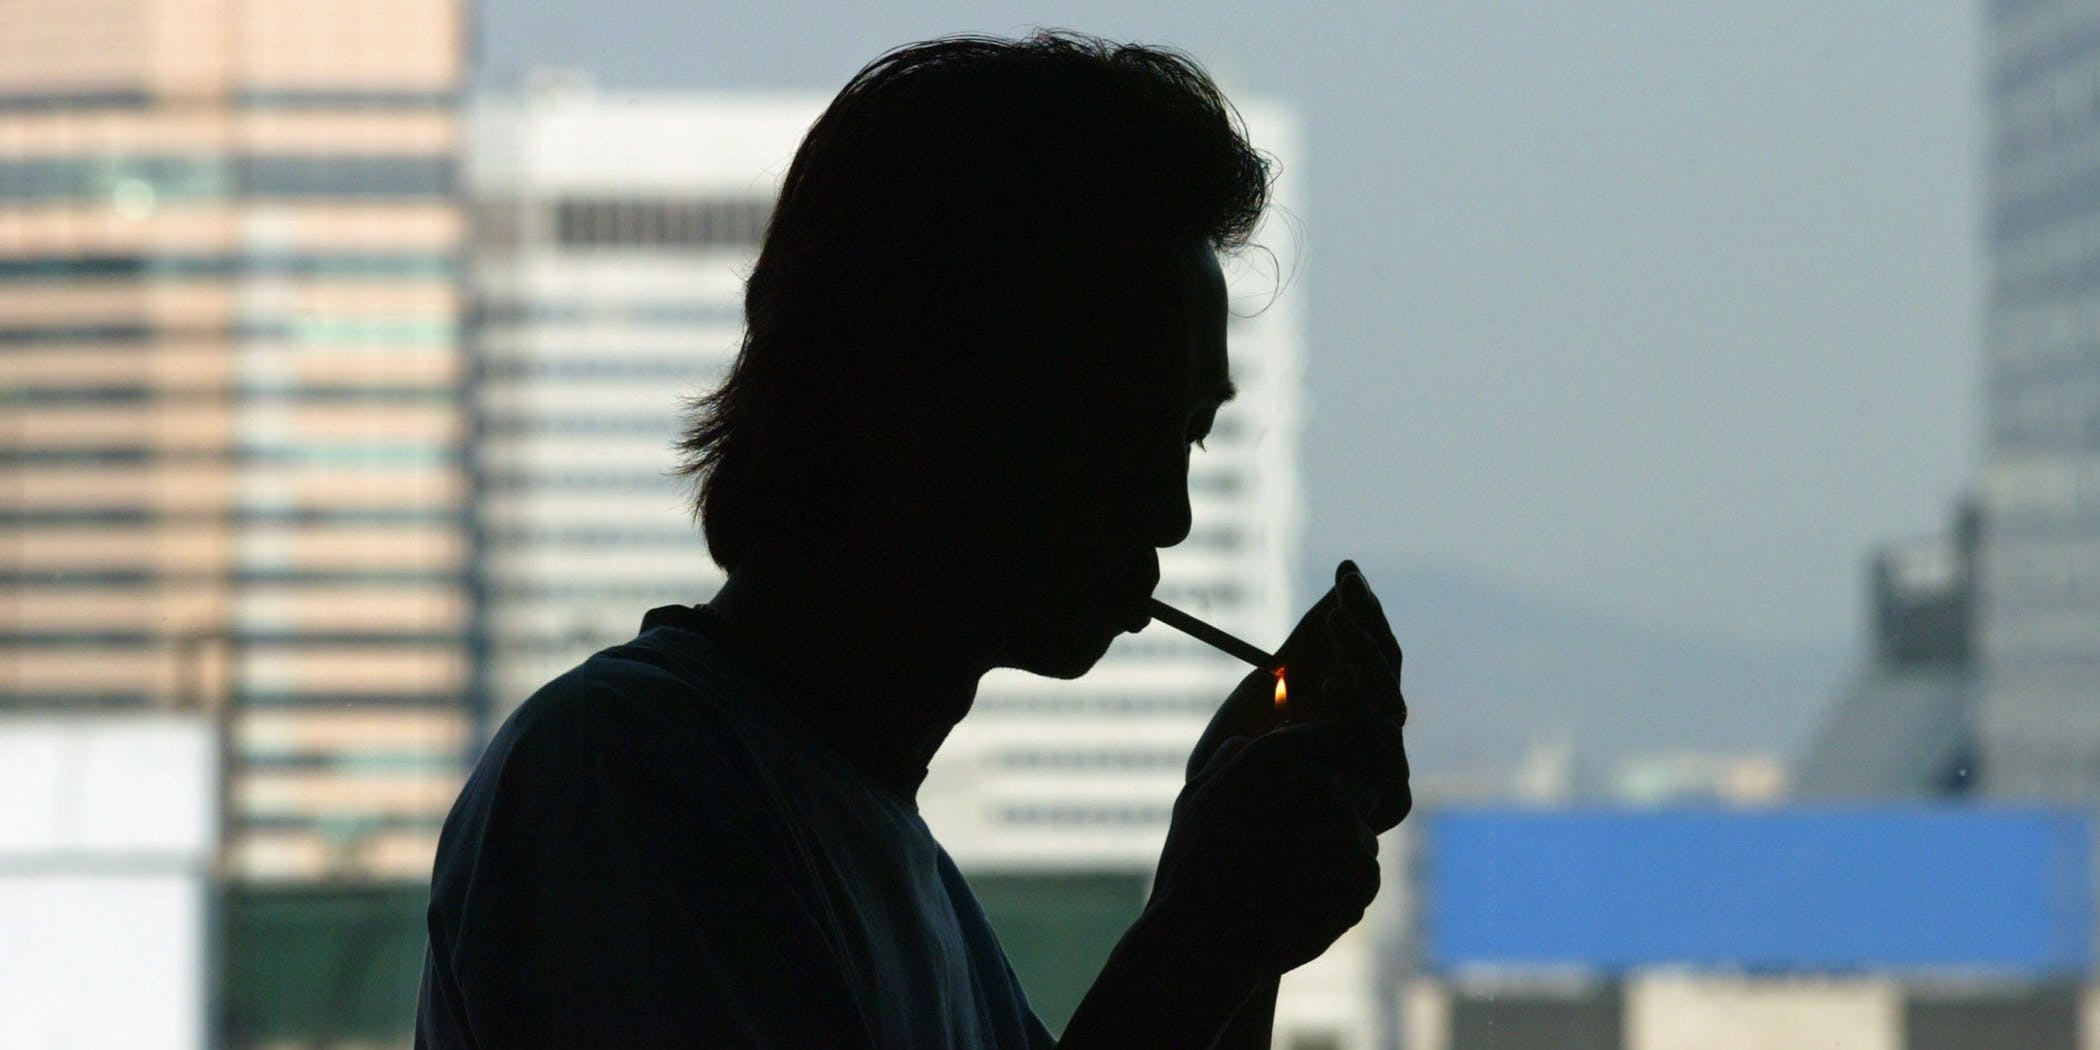 South Korean Man lights up a marijuana joint